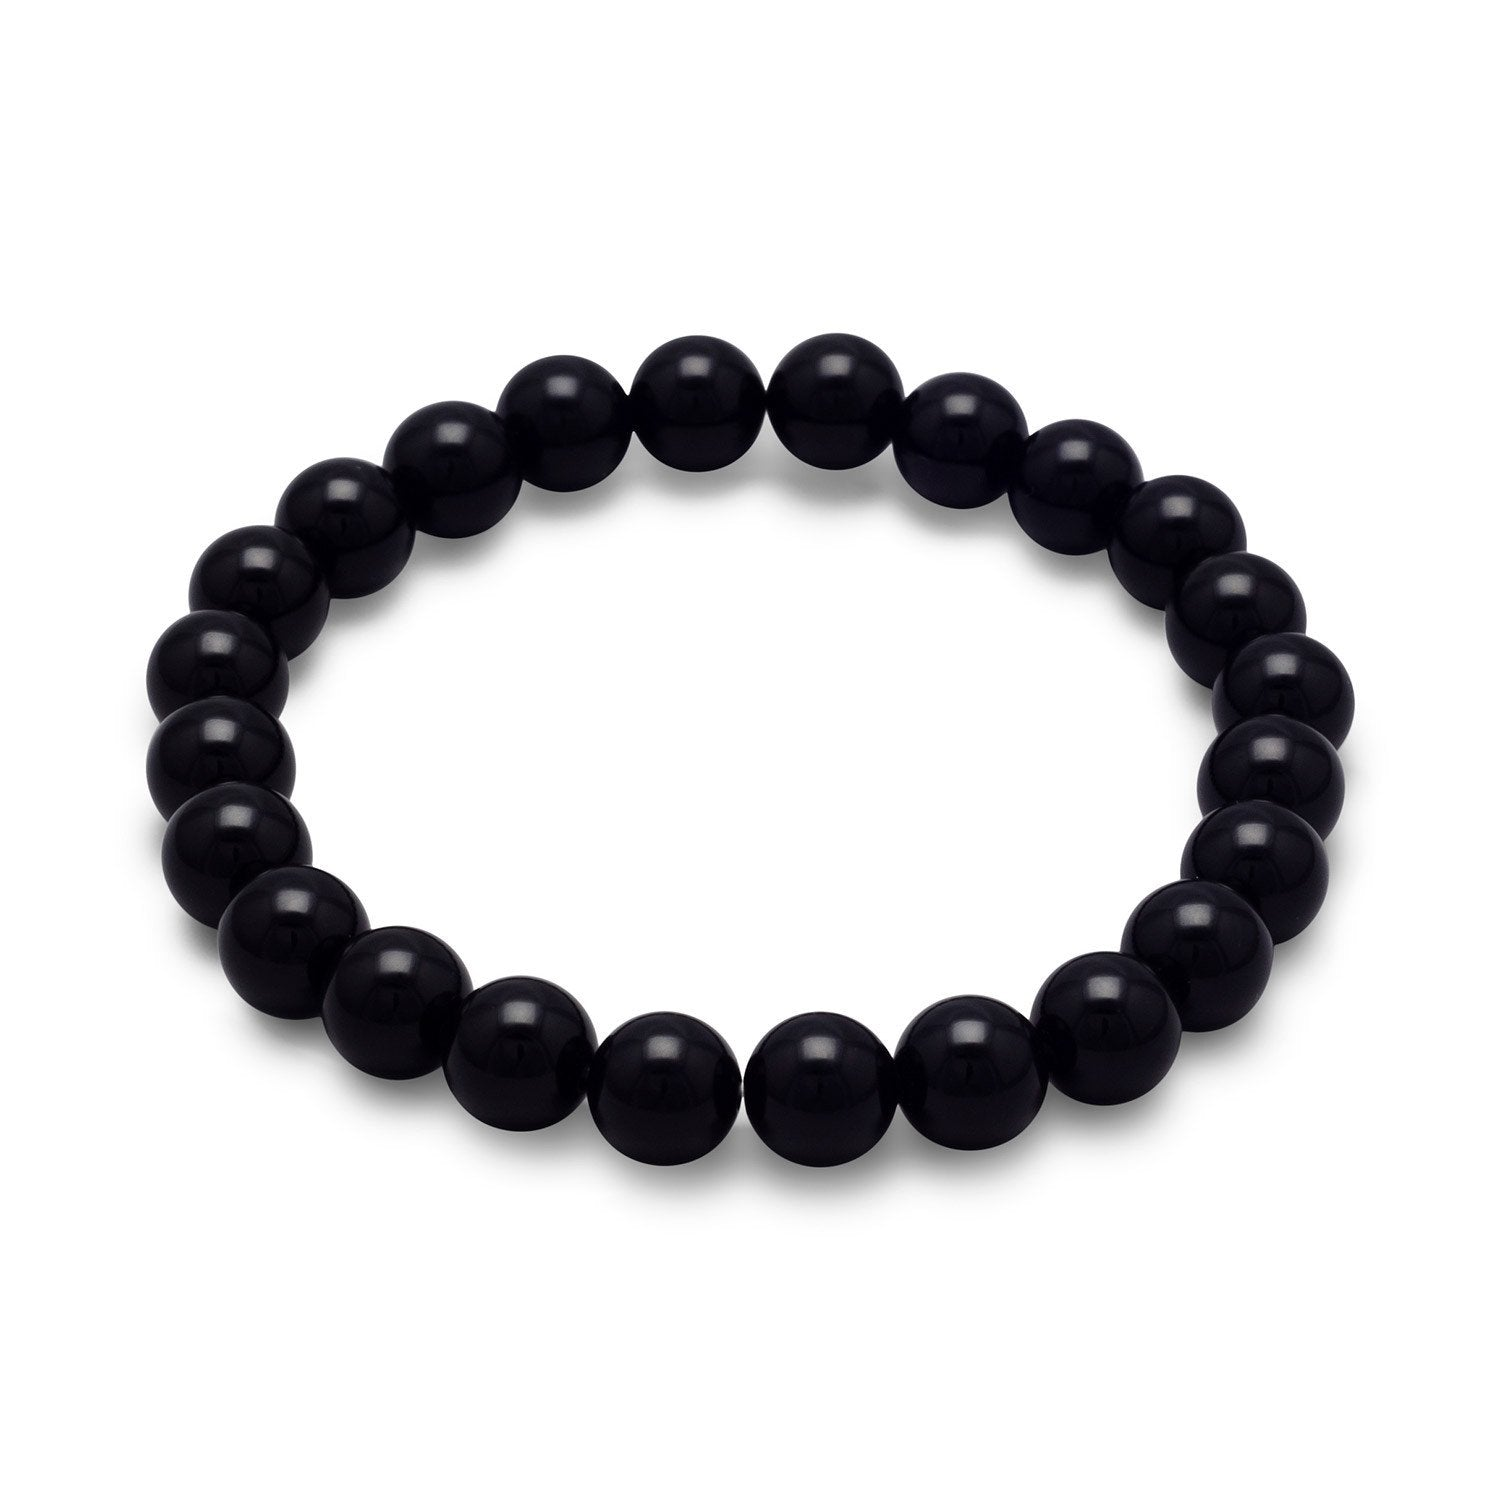 Black Onyx Bead Stretch Bracelet - Rocky Mt. Discount Outlet